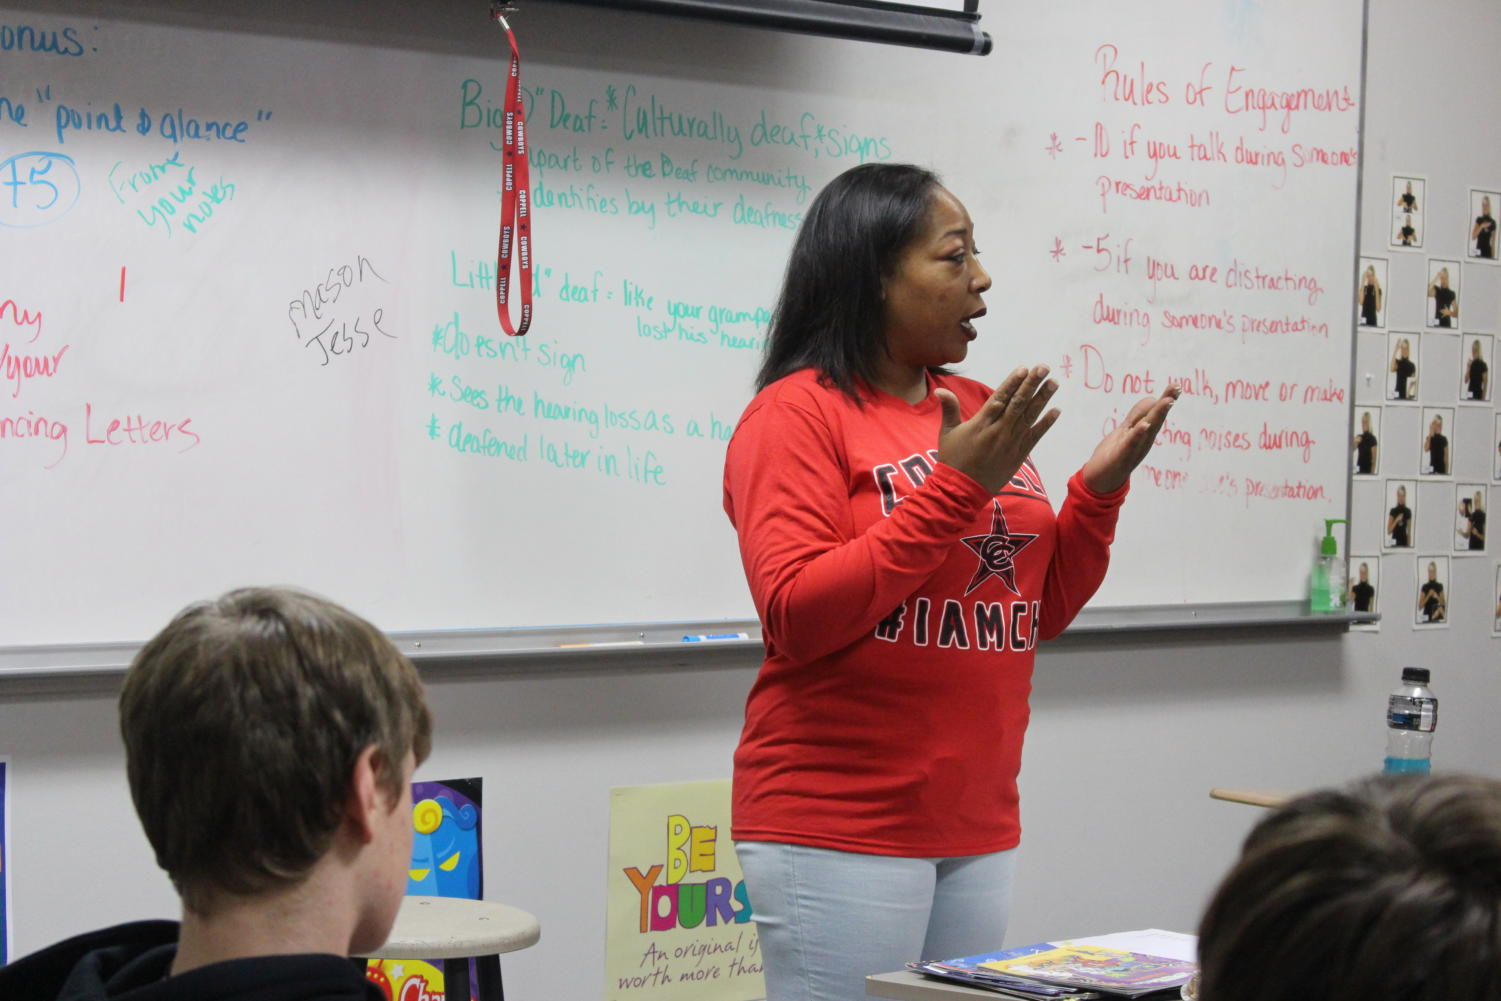 Delosha Payne is the new American Sign Language teacher at Coppell High School. Joining the district has been an exciting experience for her, as she teaches the language she loves and sees students grow in skill in ASL.